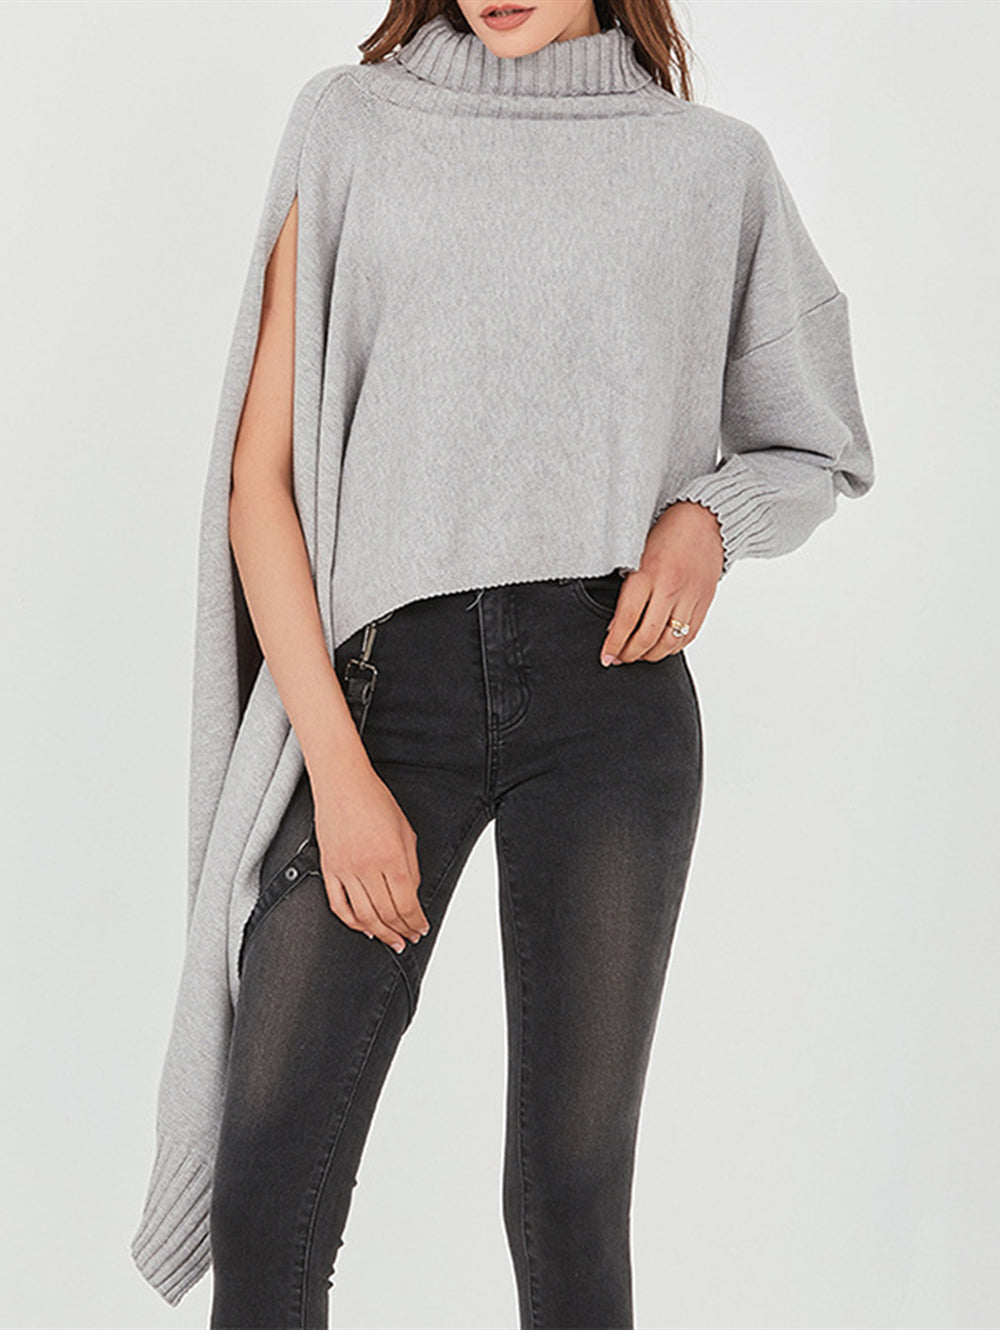 Turtleneck Long Sleeve Slit Irregular Pullover Sweater